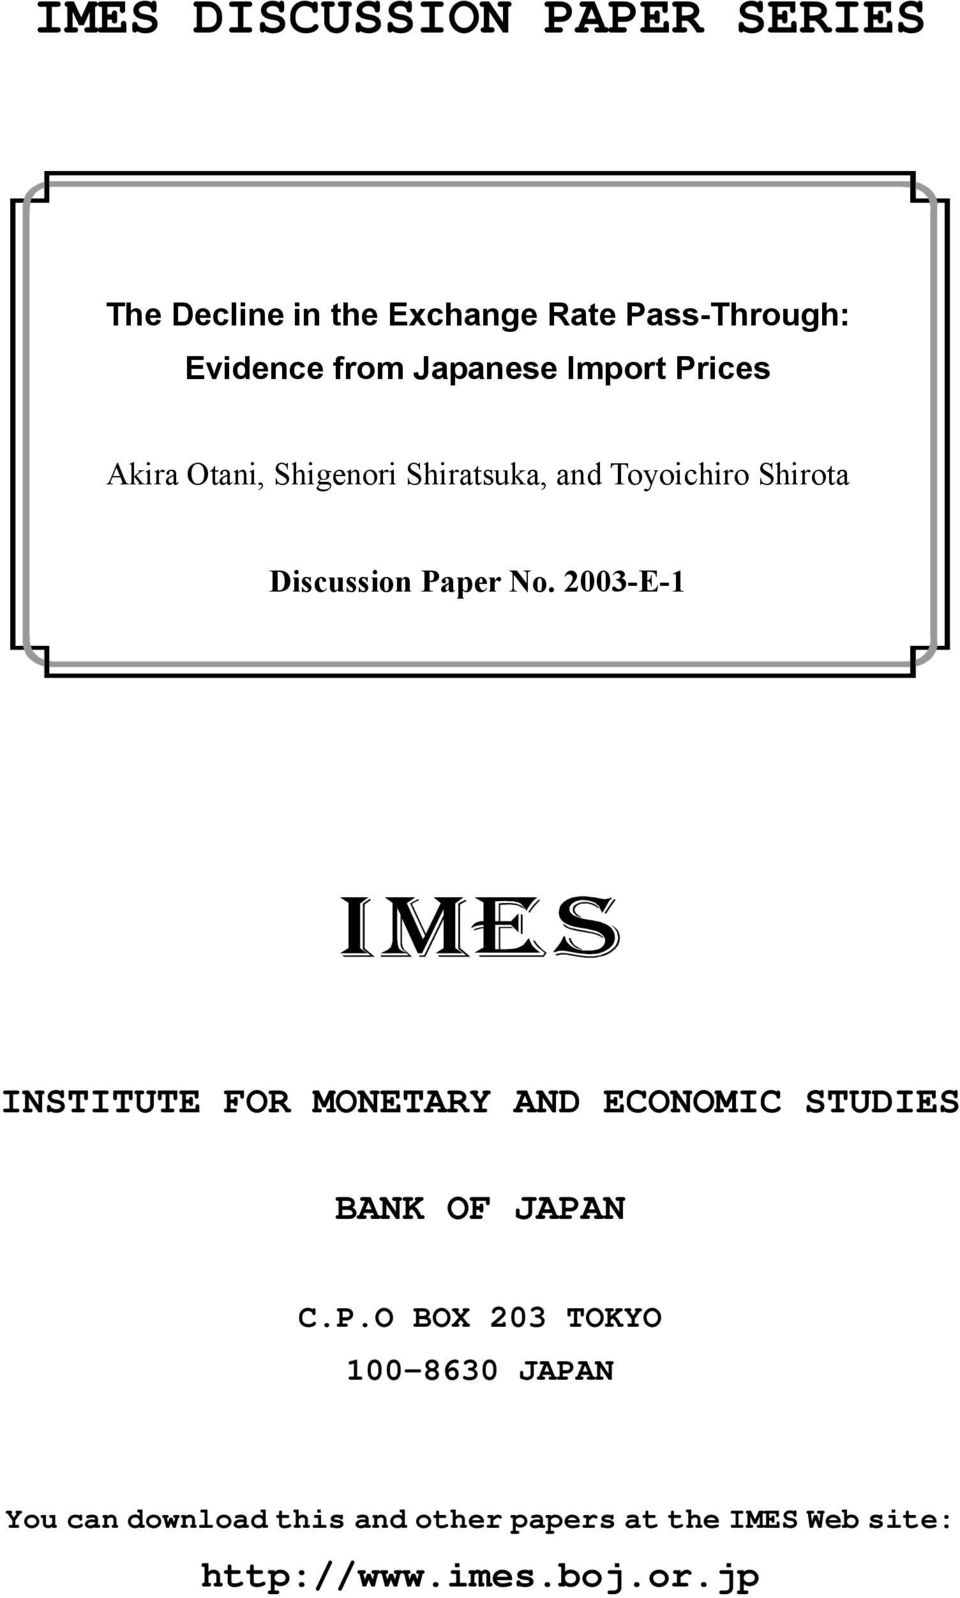 Paper No. 2003-E-1 INSTITUTE FOR MONETARY AND ECONOMIC STUDIES BANK OF JAPAN C.P.O BOX 203